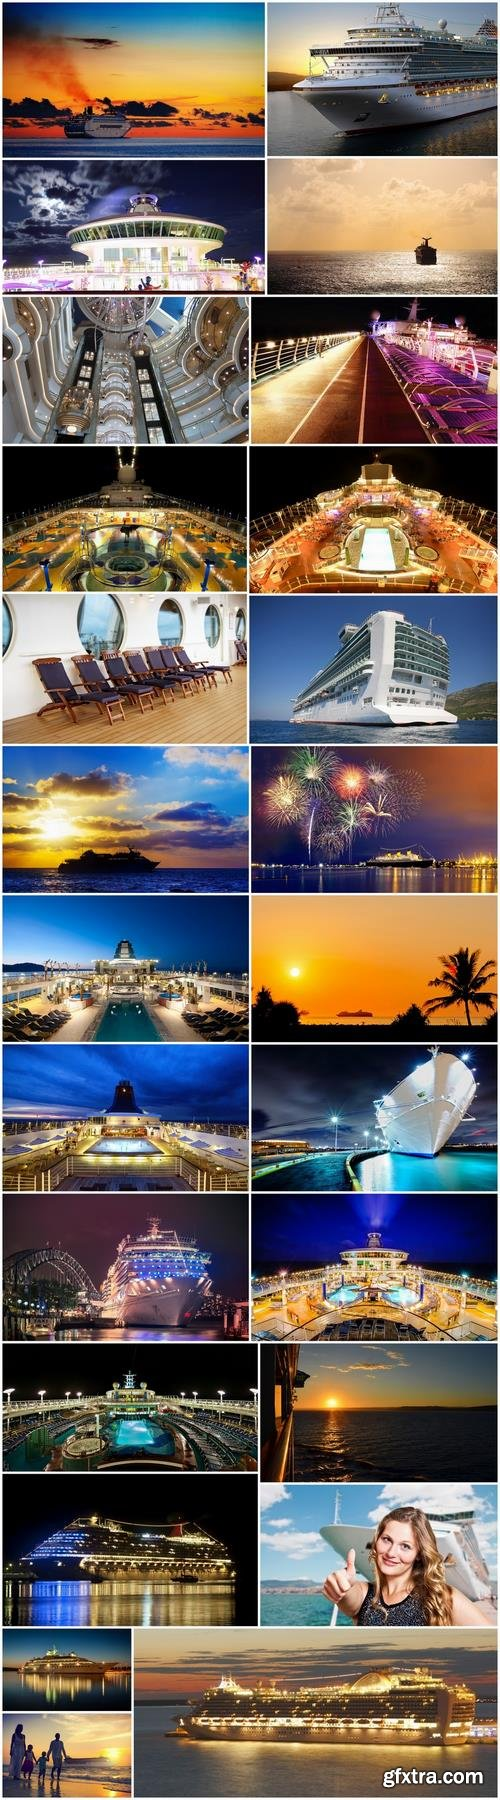 Cruise liner vacation cruise vacation journey by sea deck 25 HQ Jpeg